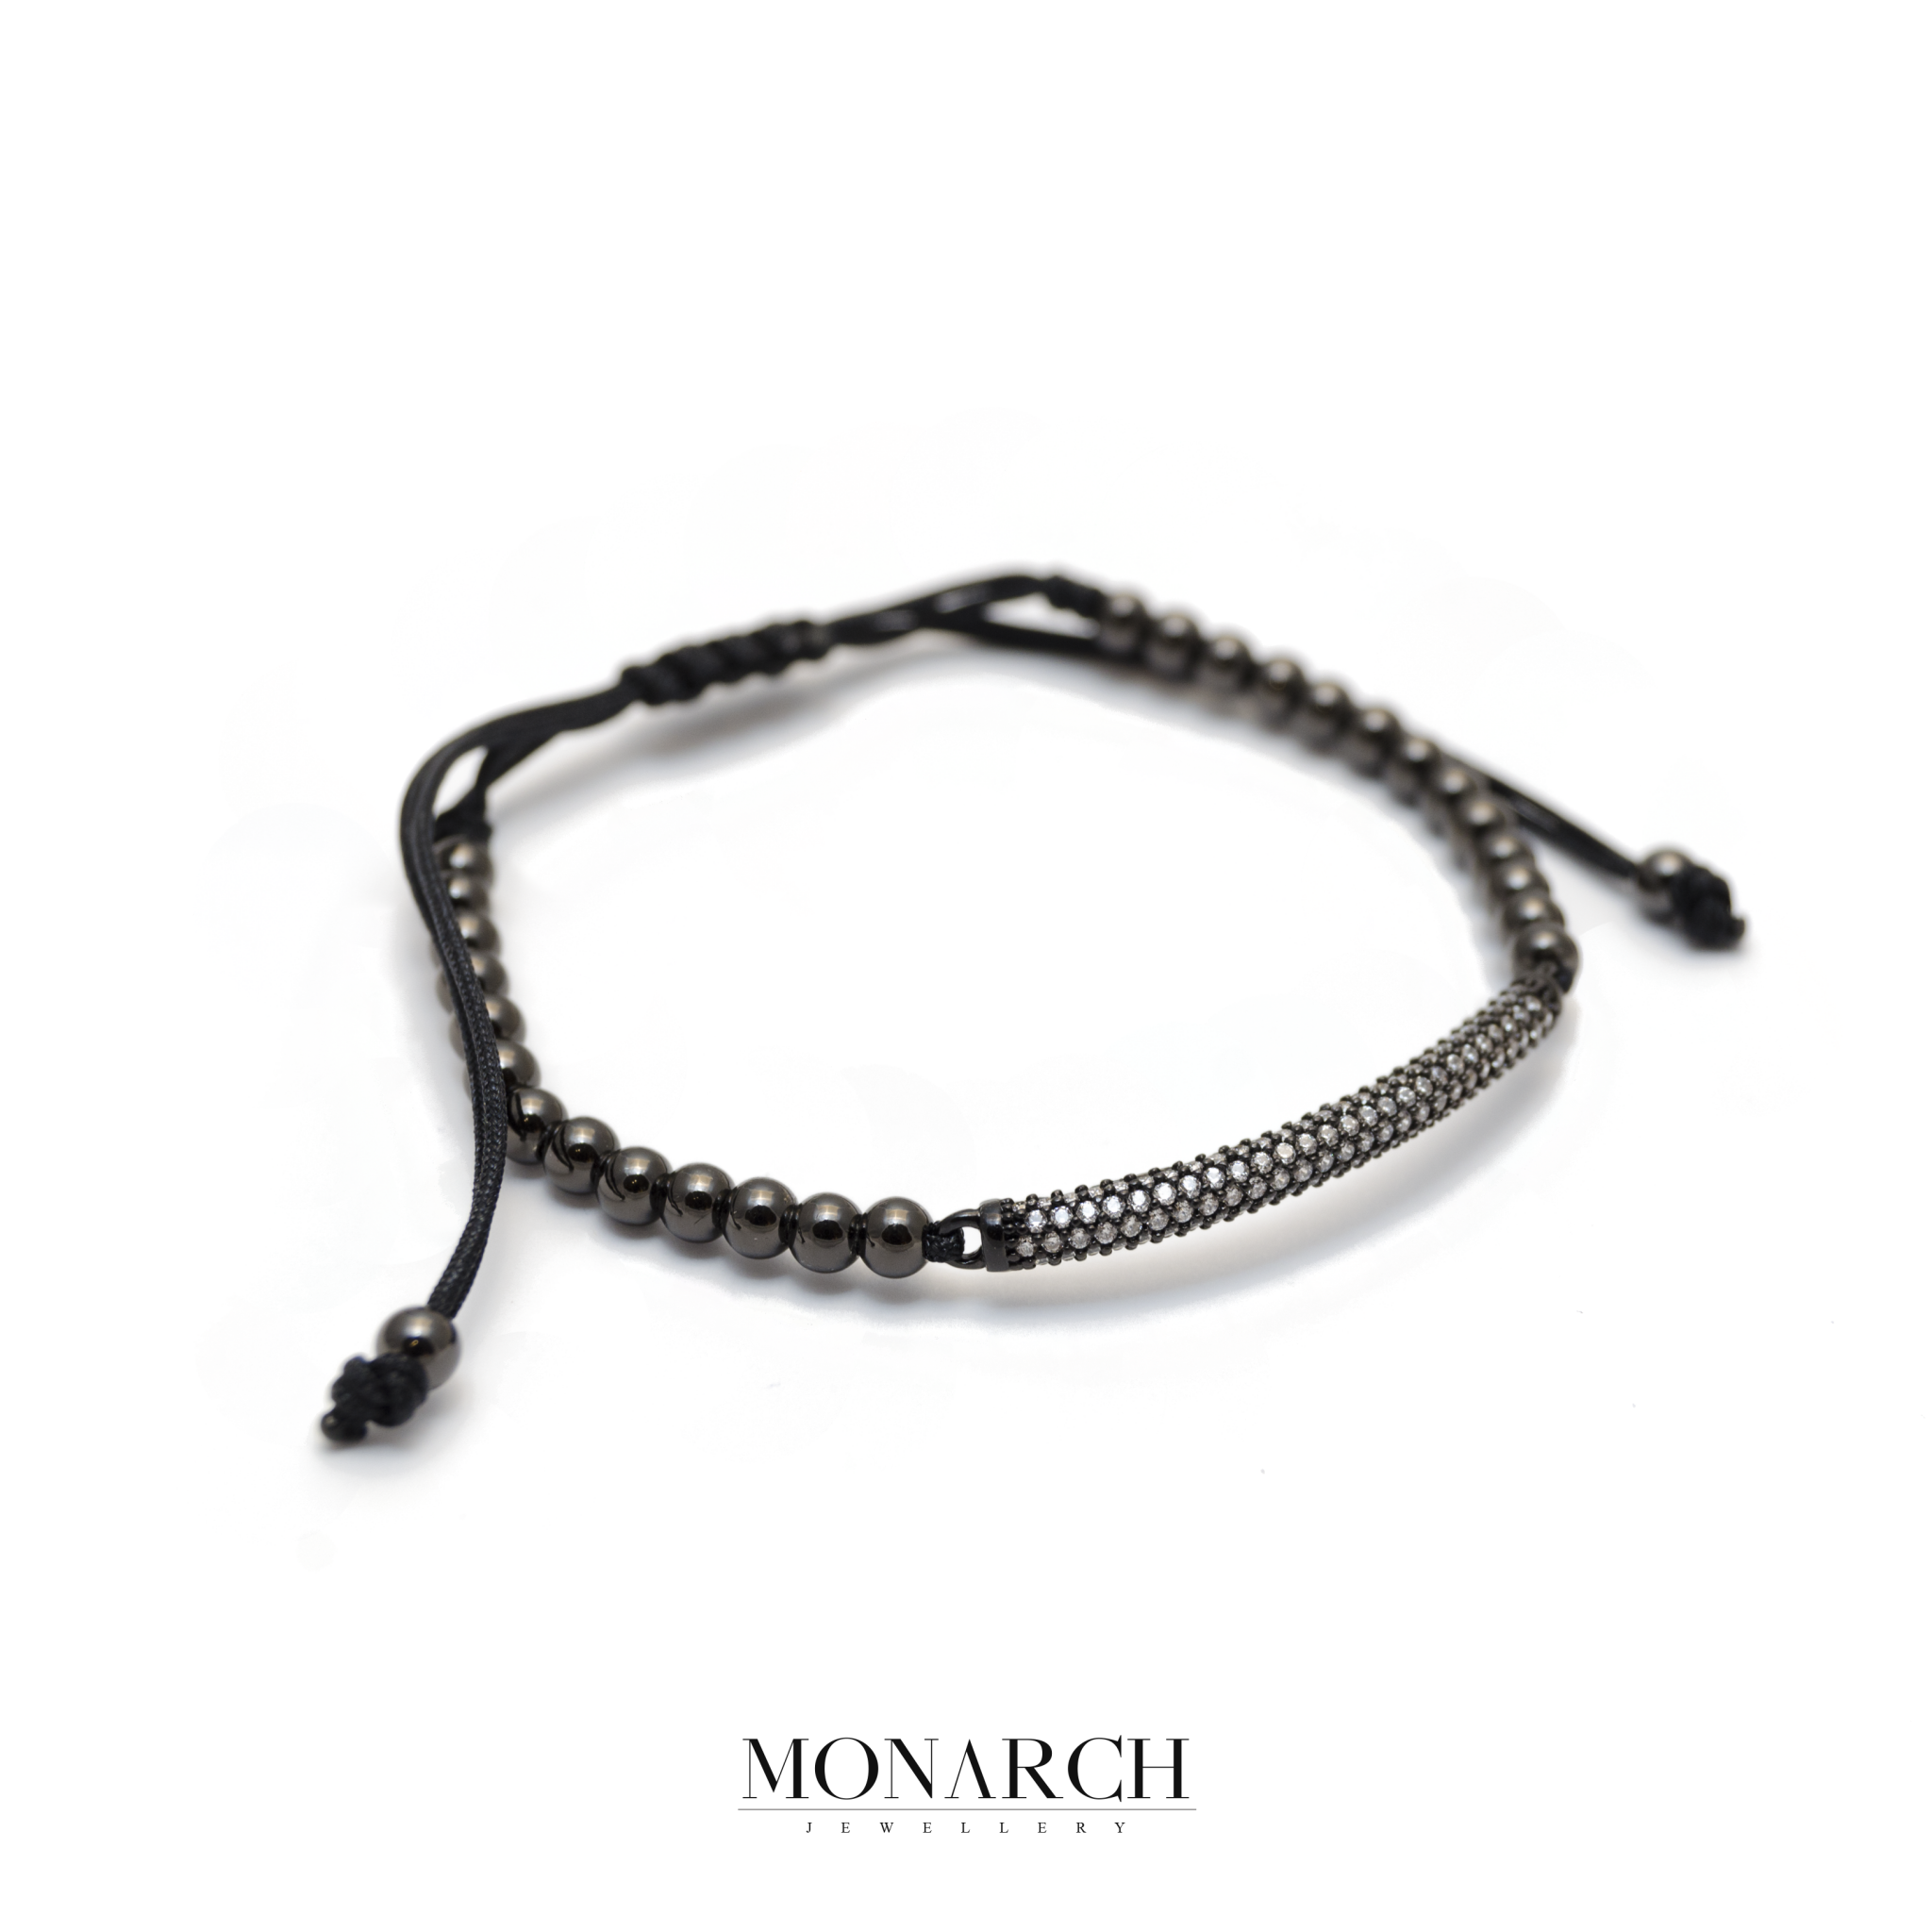 Monarch Jewellery Black White Micro Pave Charm Macrame Bracelet